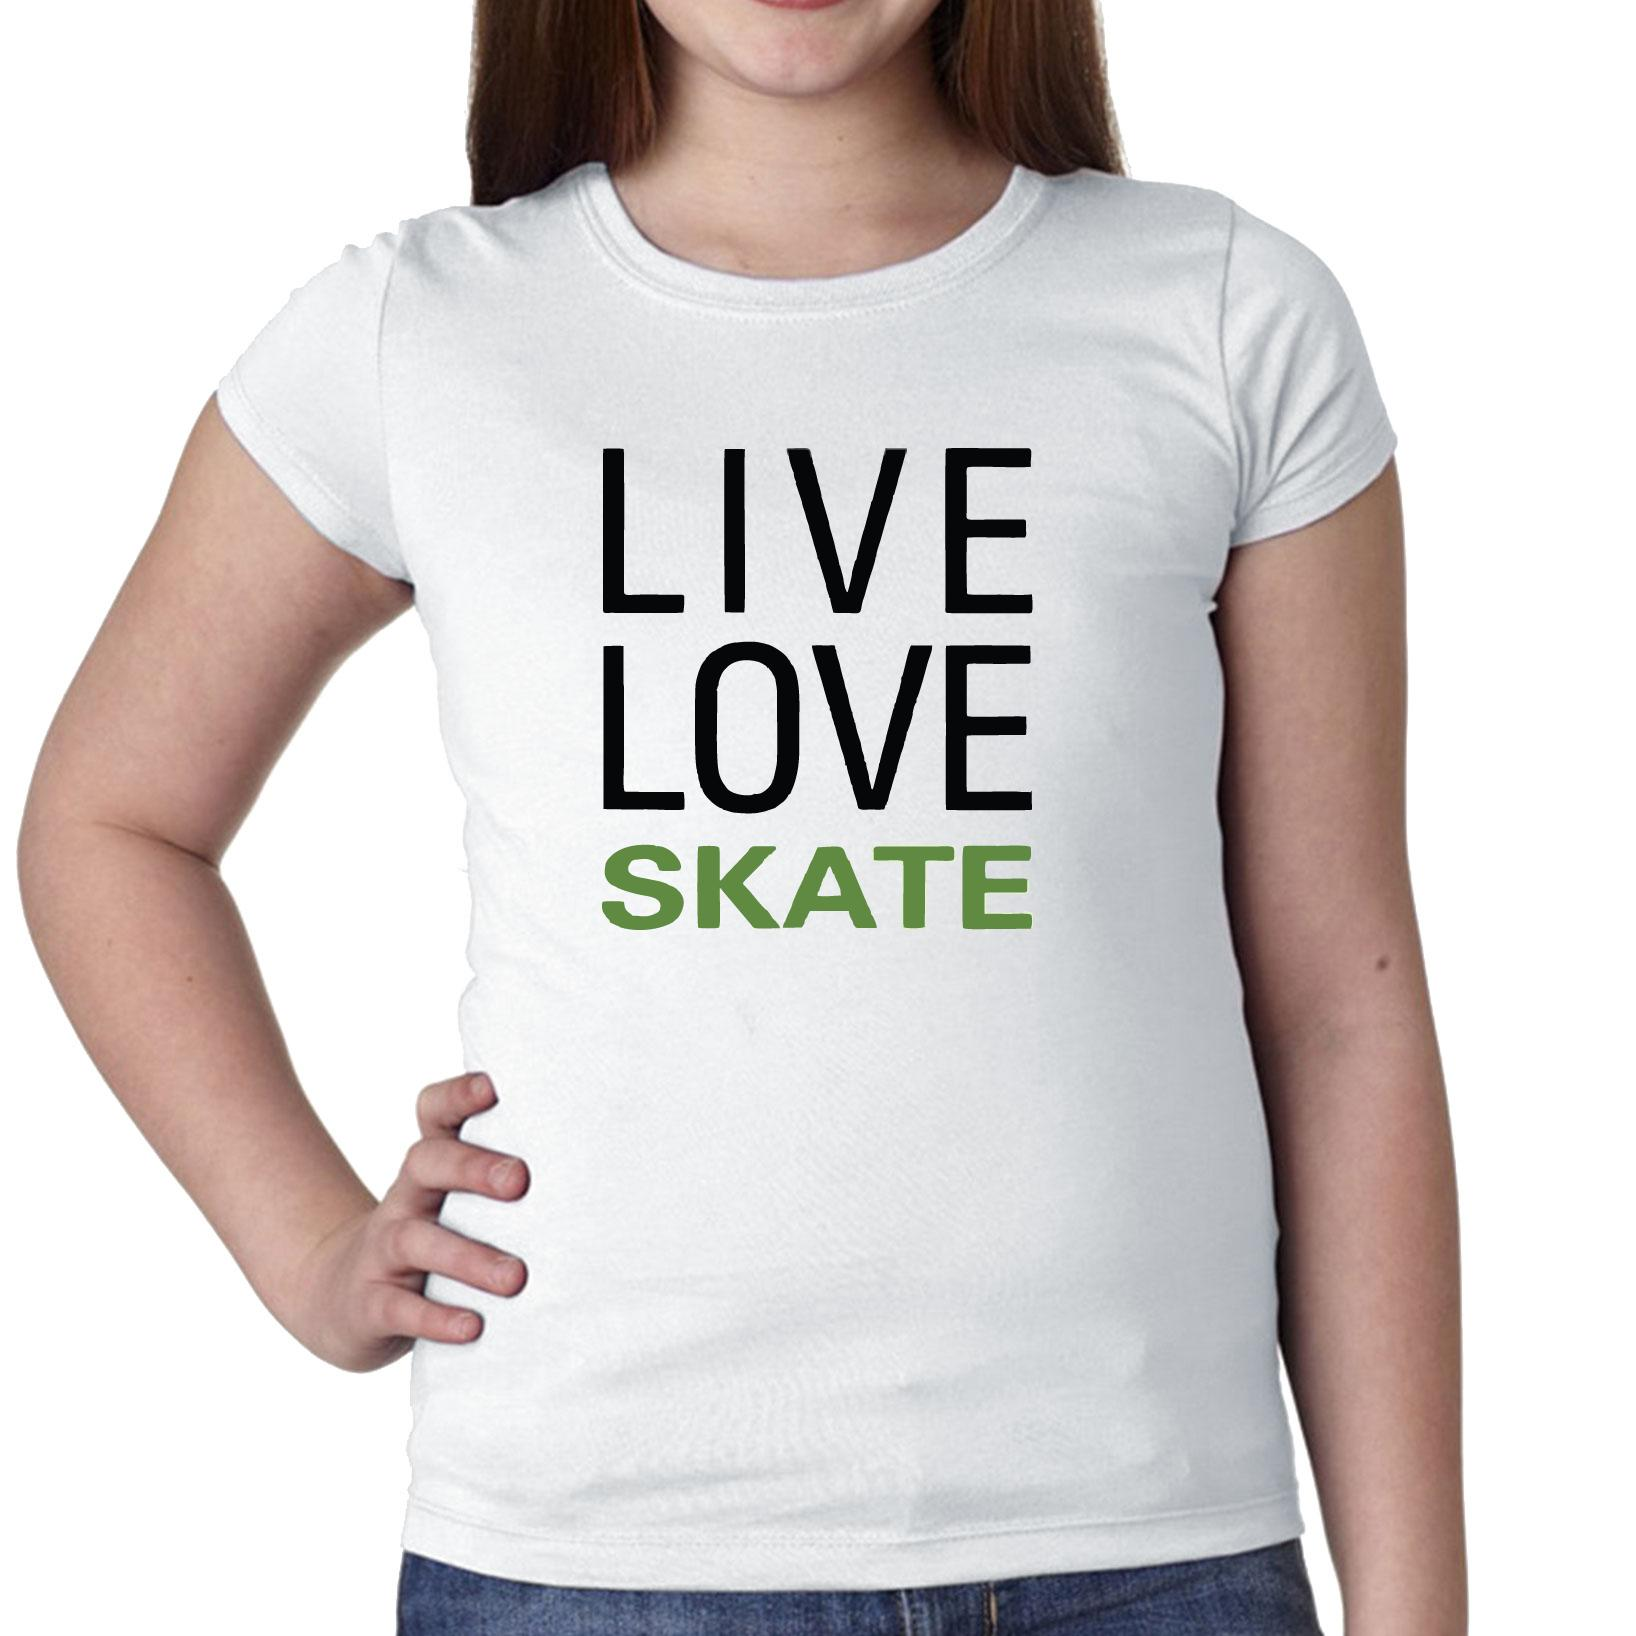 Simple Live Love Skate Skating Large Font Graphic Girl's Cotton Youth T-Shirt by Hollywood Thread